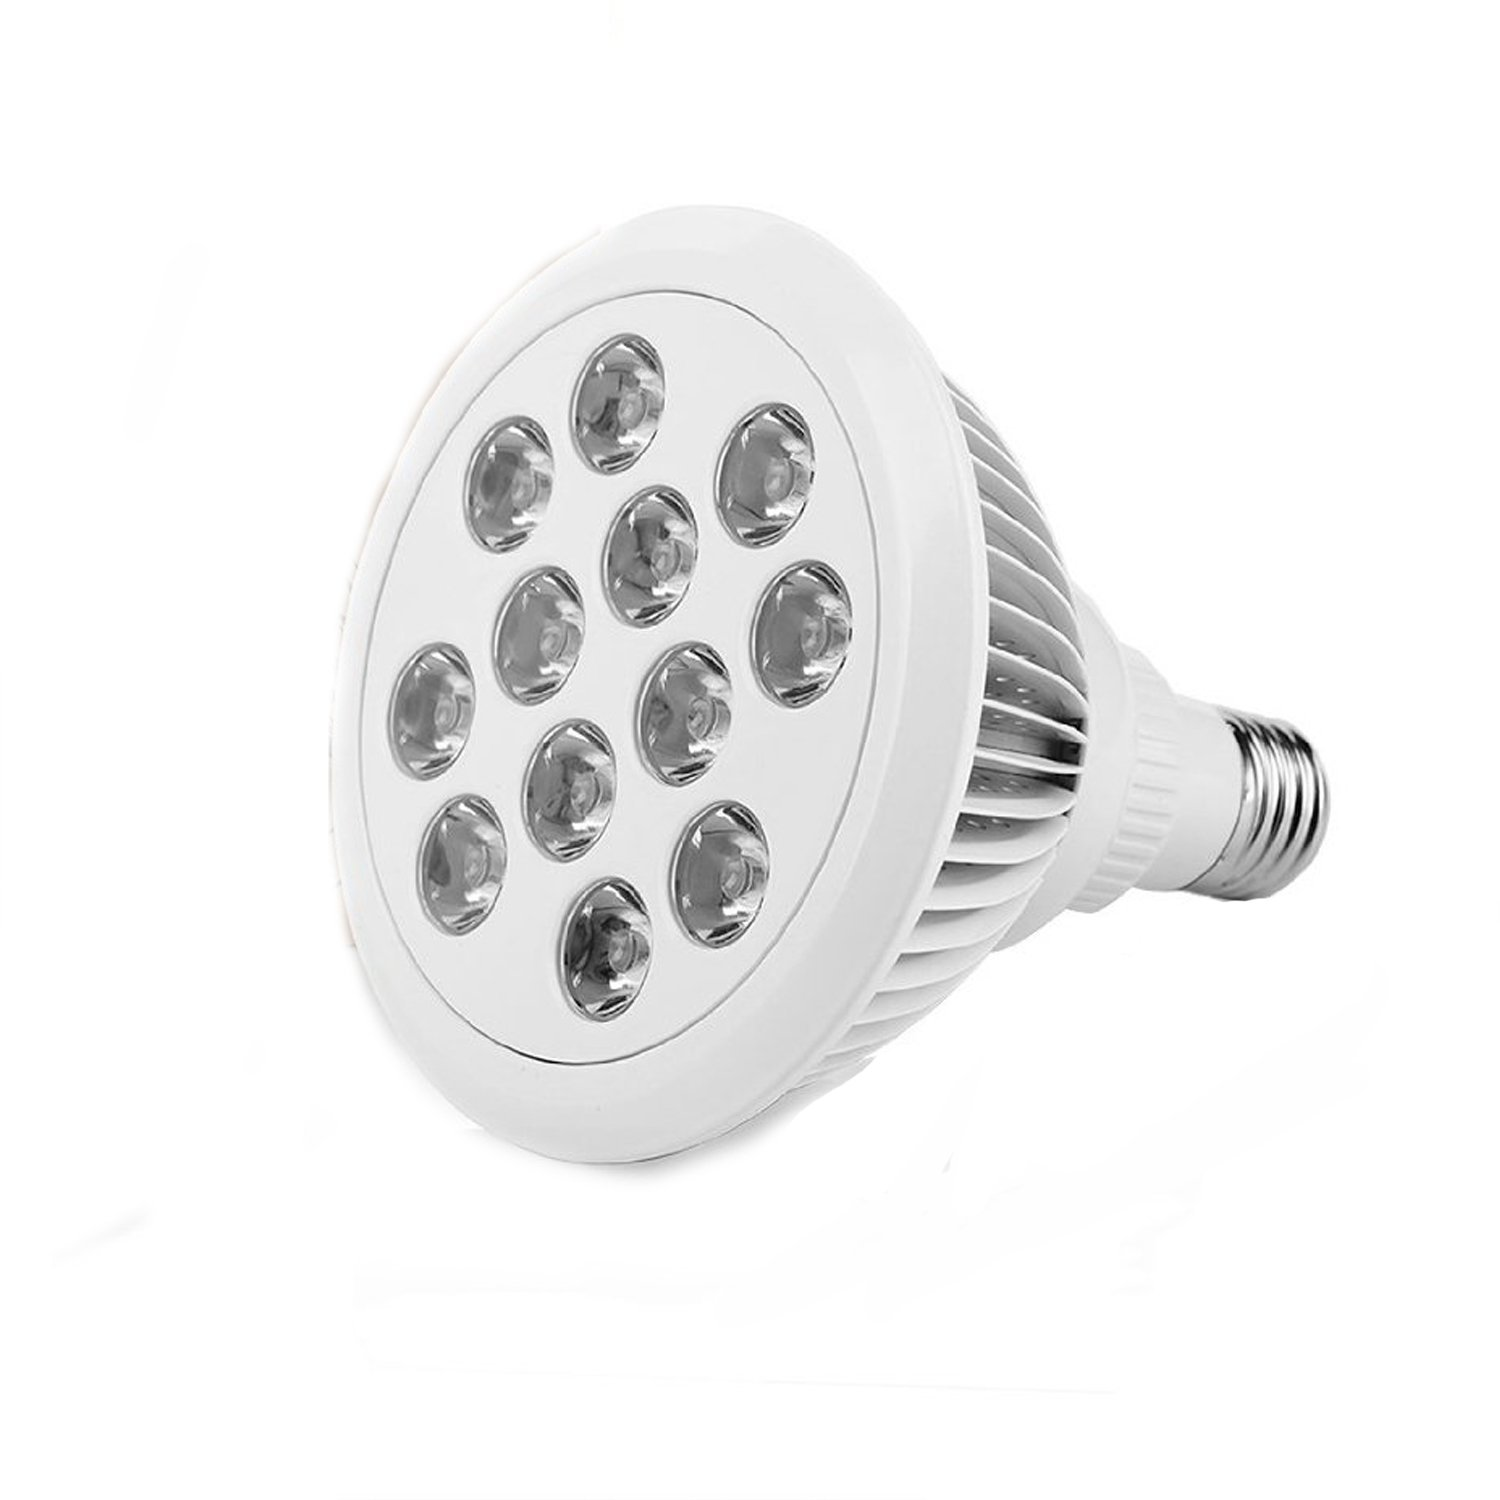 Amazon.com : LED Grow Light for Indoor Horticulture Hydroponic ...